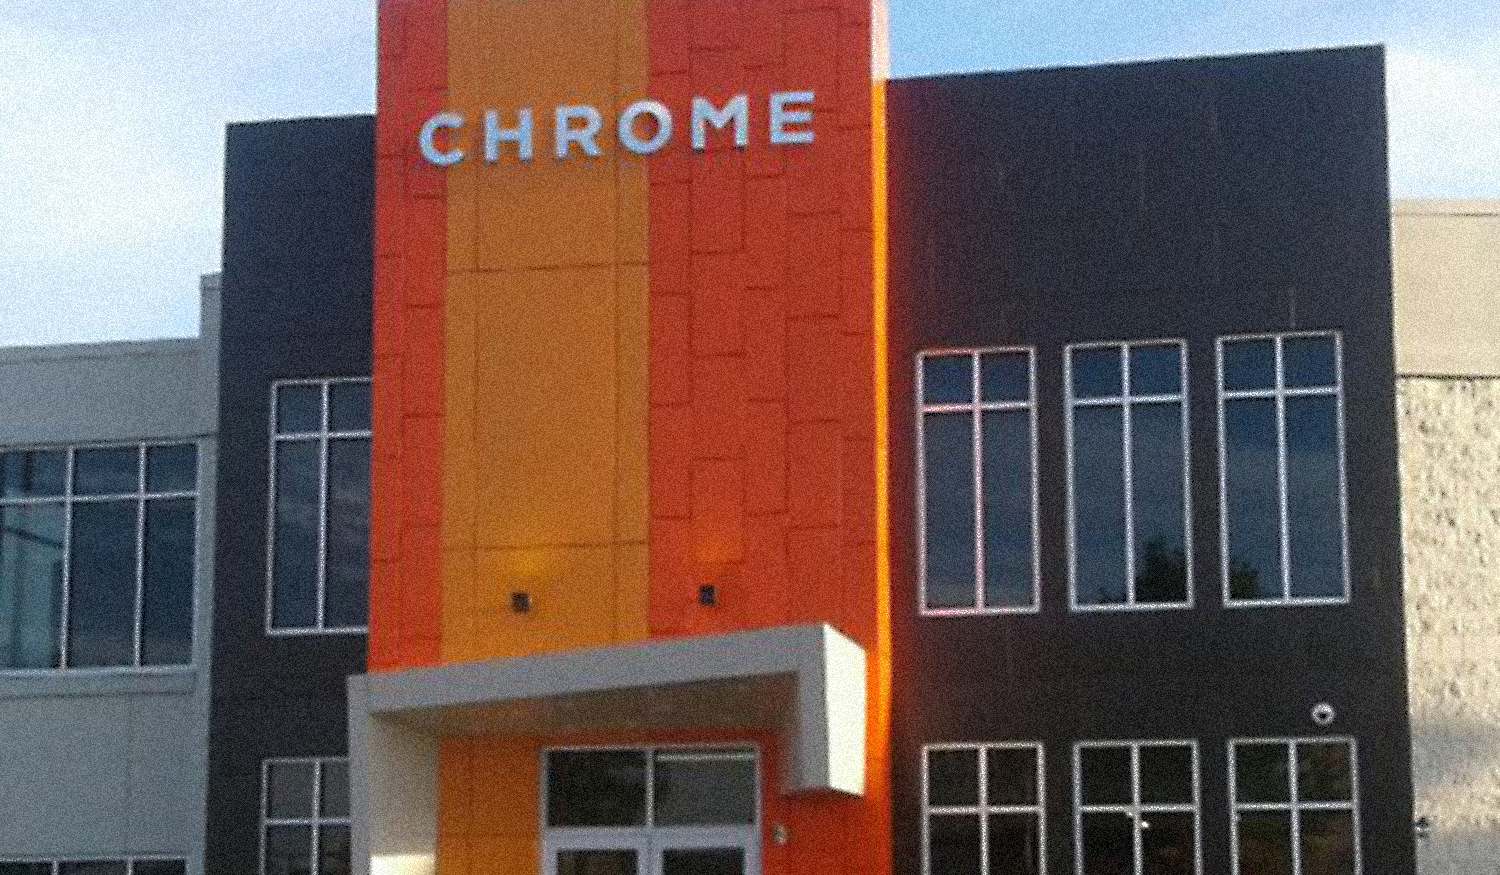 Various shapes and sizes of bright colored orange and yellow aluminum composite material paneling on the front of a modern looking financial institution